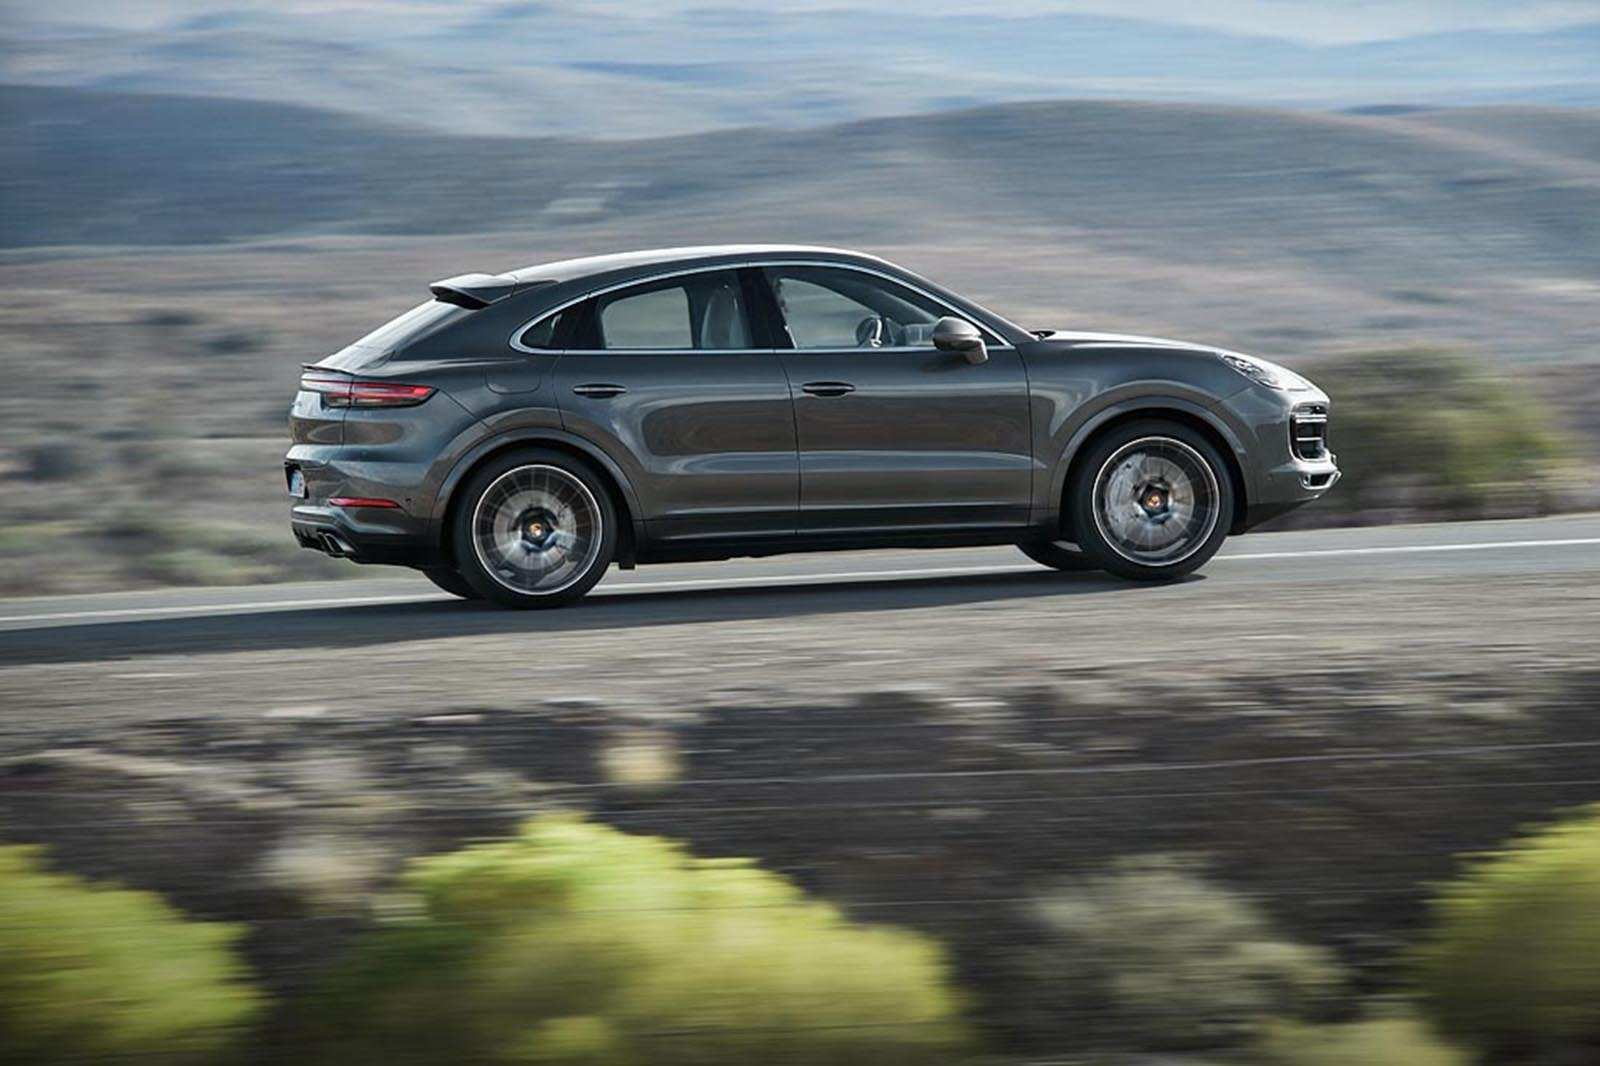 48 The Best 2020 Porsche Macan Turbo Wallpaper